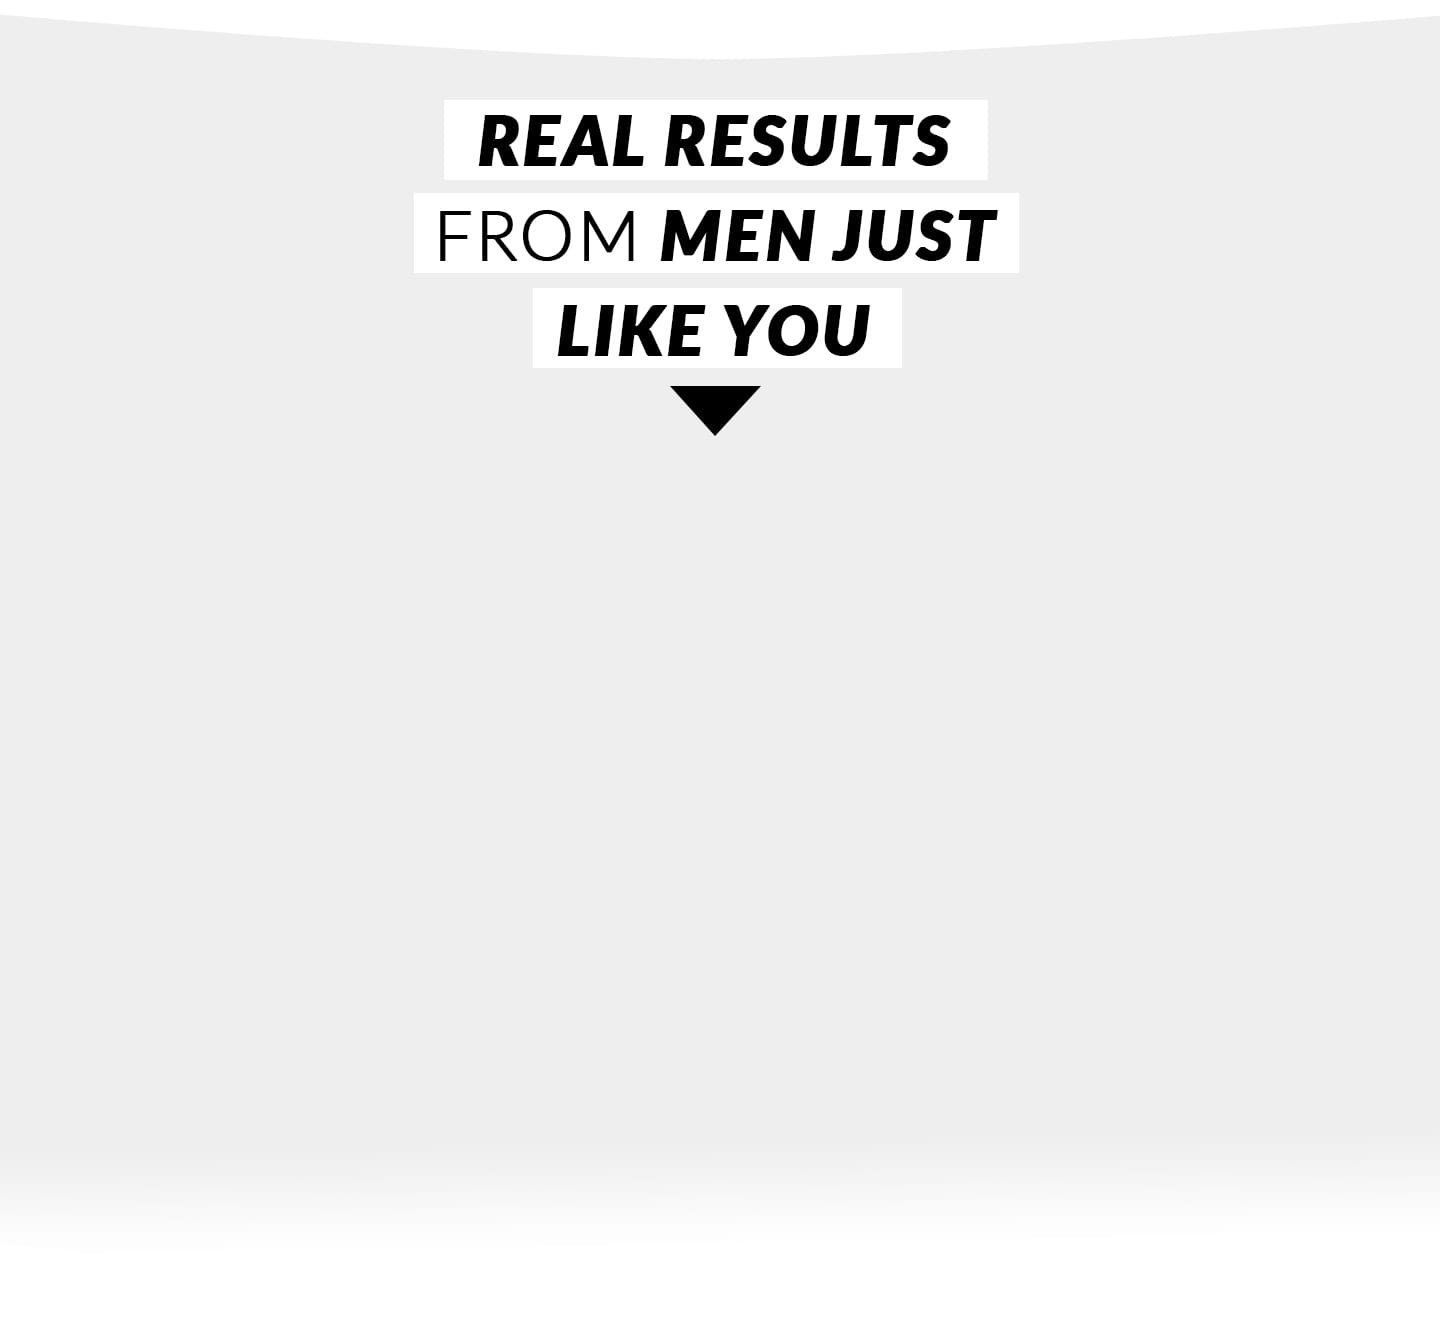 REAL RESULTS FROM MEN JUST LIKE YOU